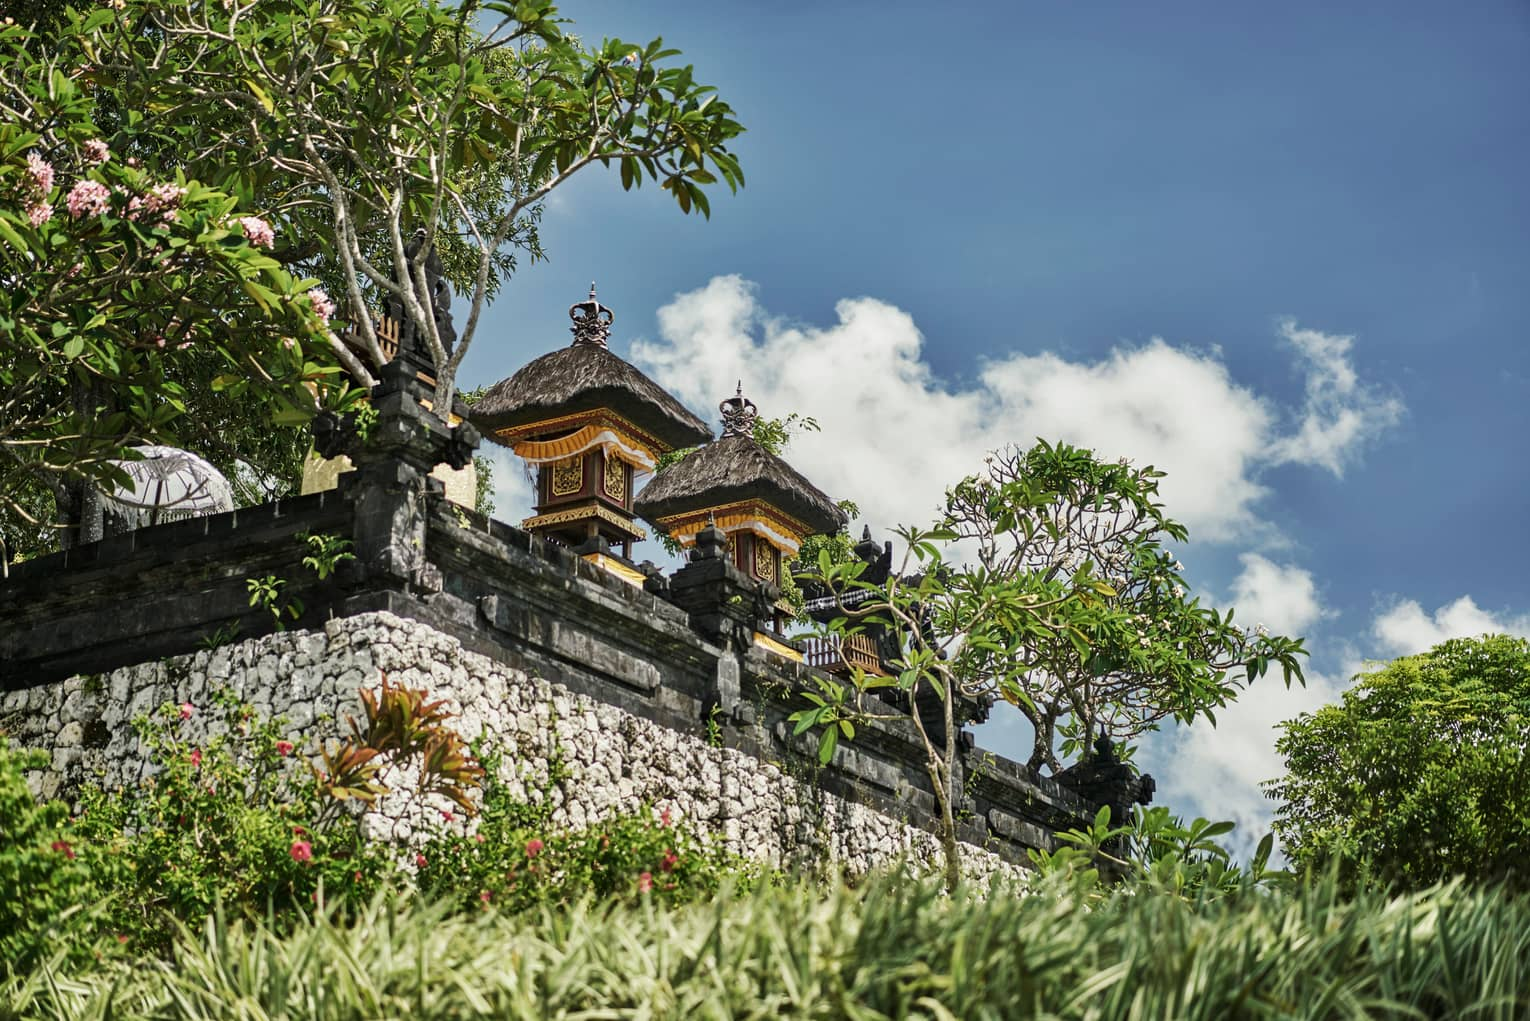 Exterior view of resort temple with stone wall, posts and carvings, tropical trees